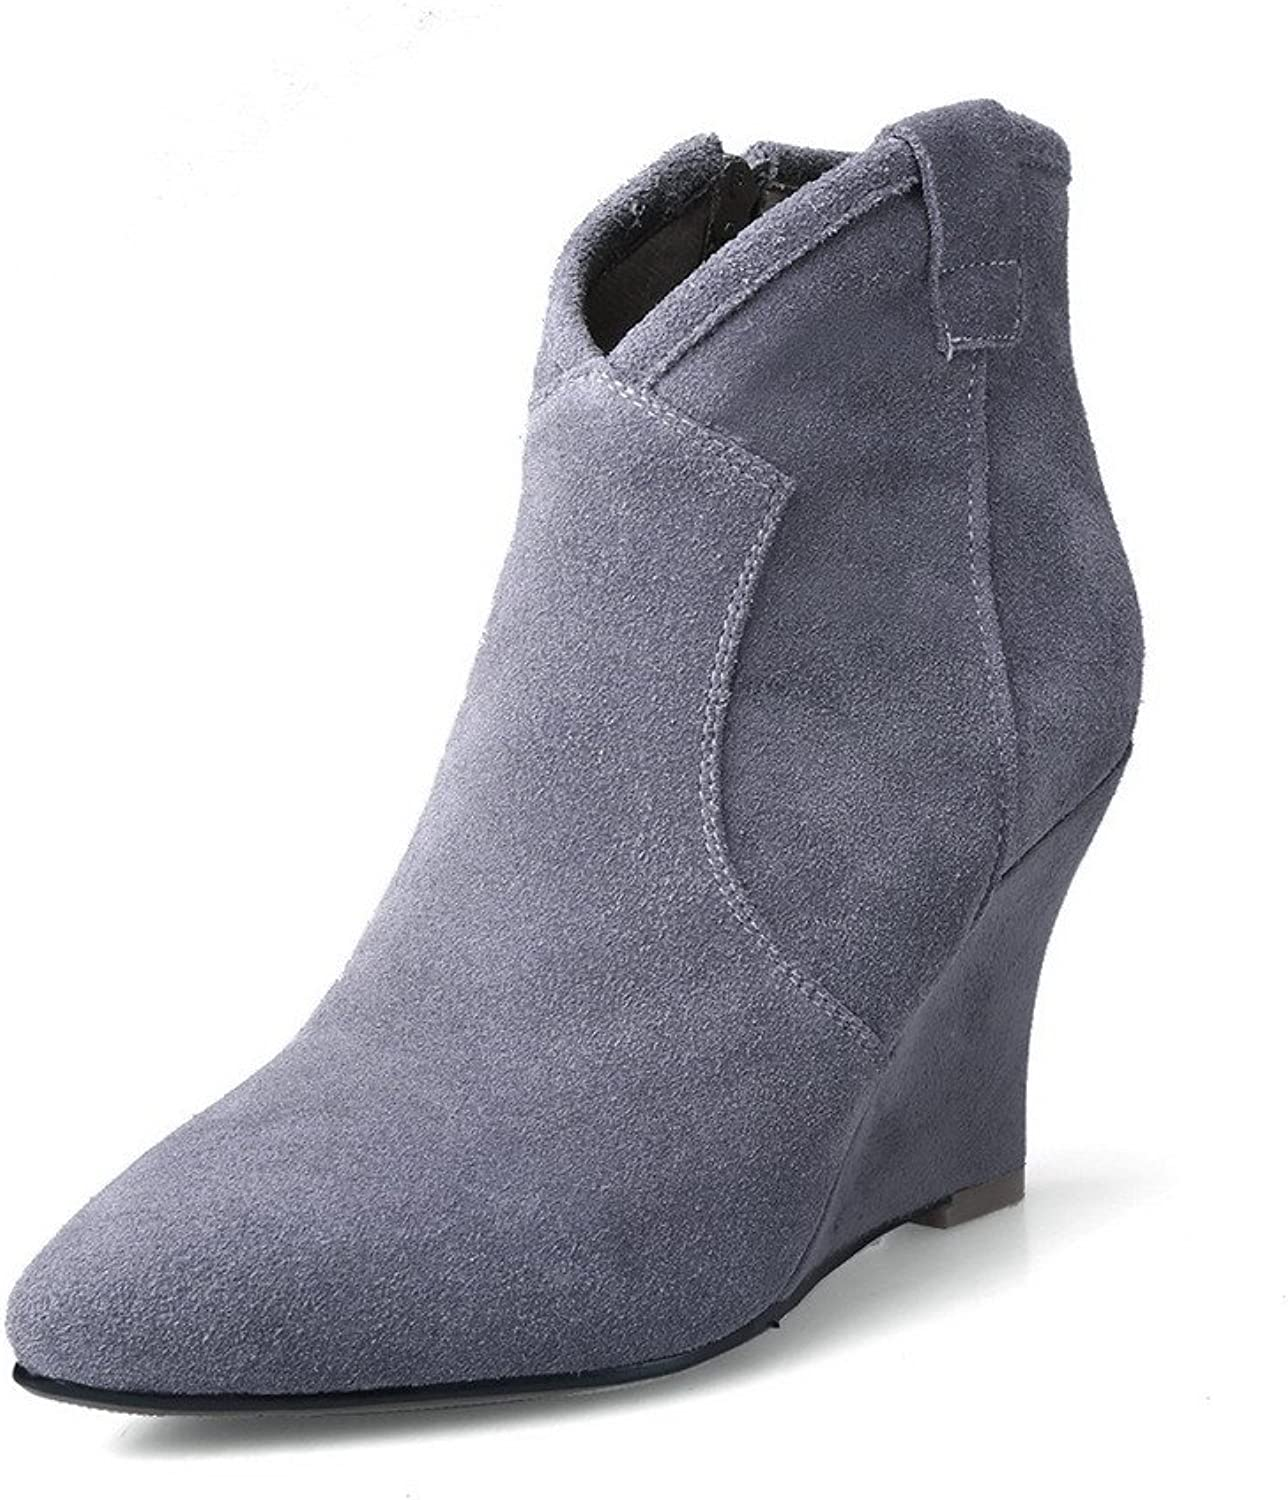 WeenFashion Women's Cow Imitated Suede High-Heels Pointed-Toe Boots with Rubber shoes Sole